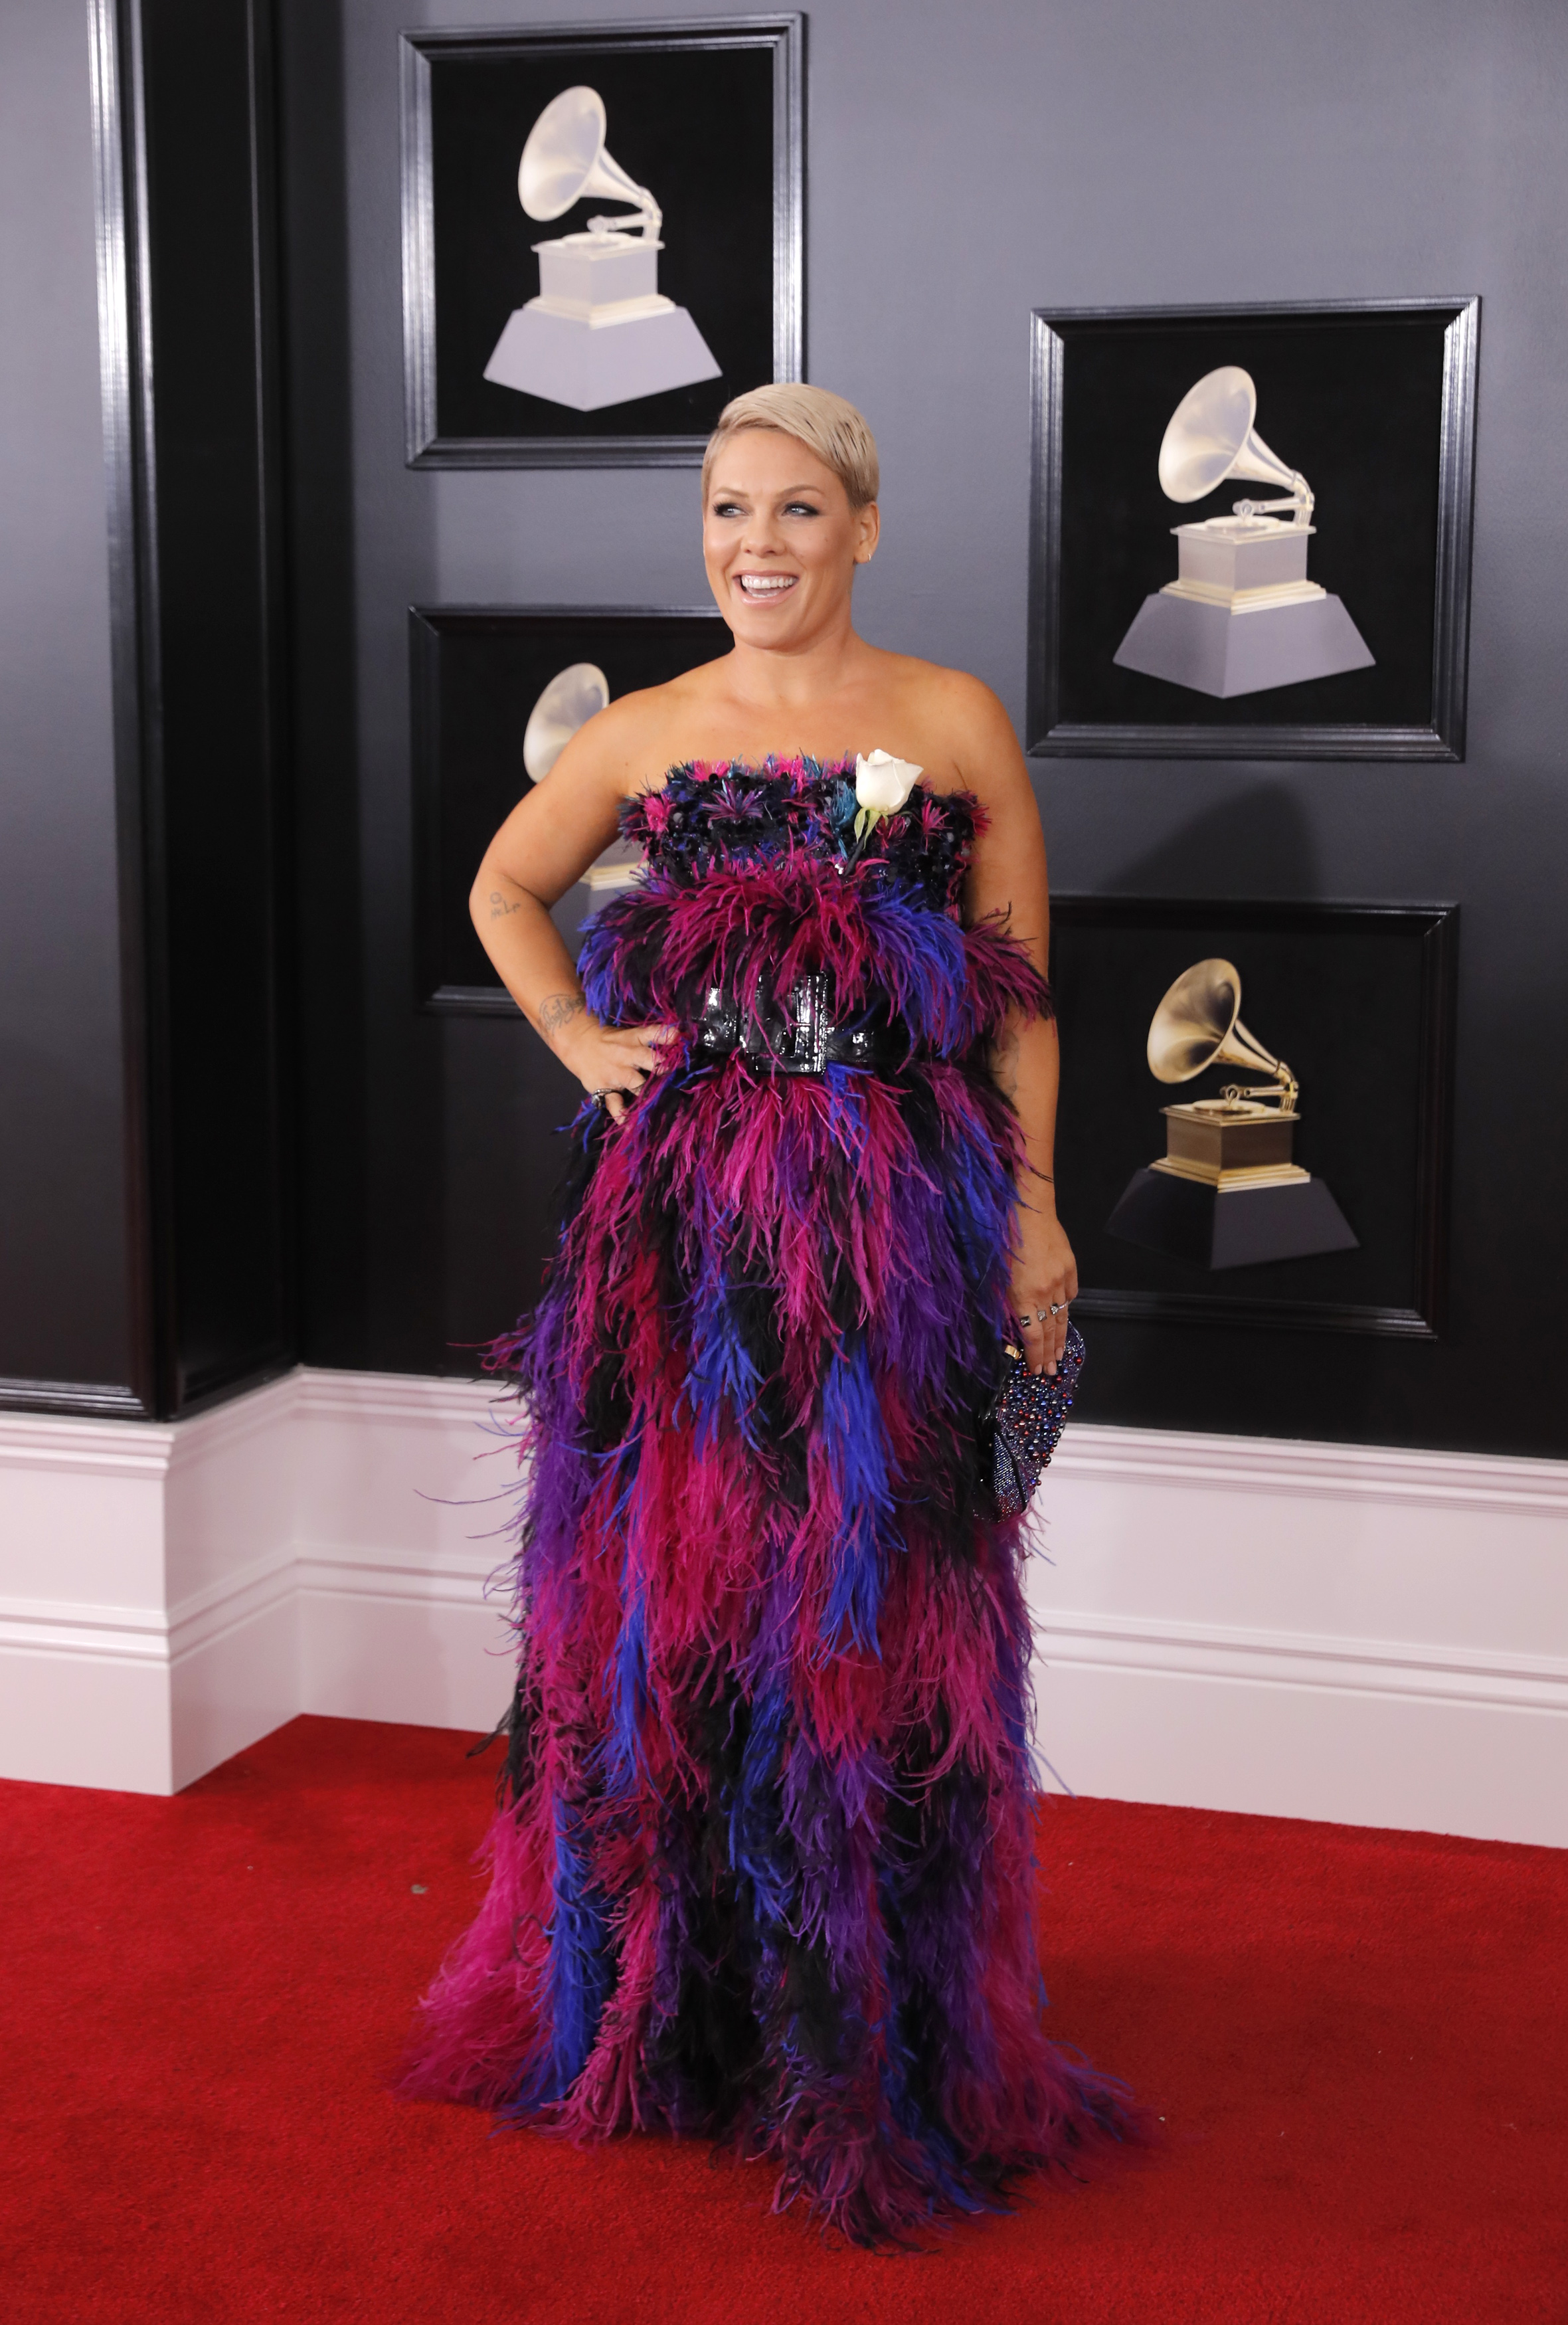 60th Annual Grammy Awards  Arrivals  New York, U.S., 28/01/2018  Singer Pink. REUTERS/Andrew Kelly - HP1EE1T00L333